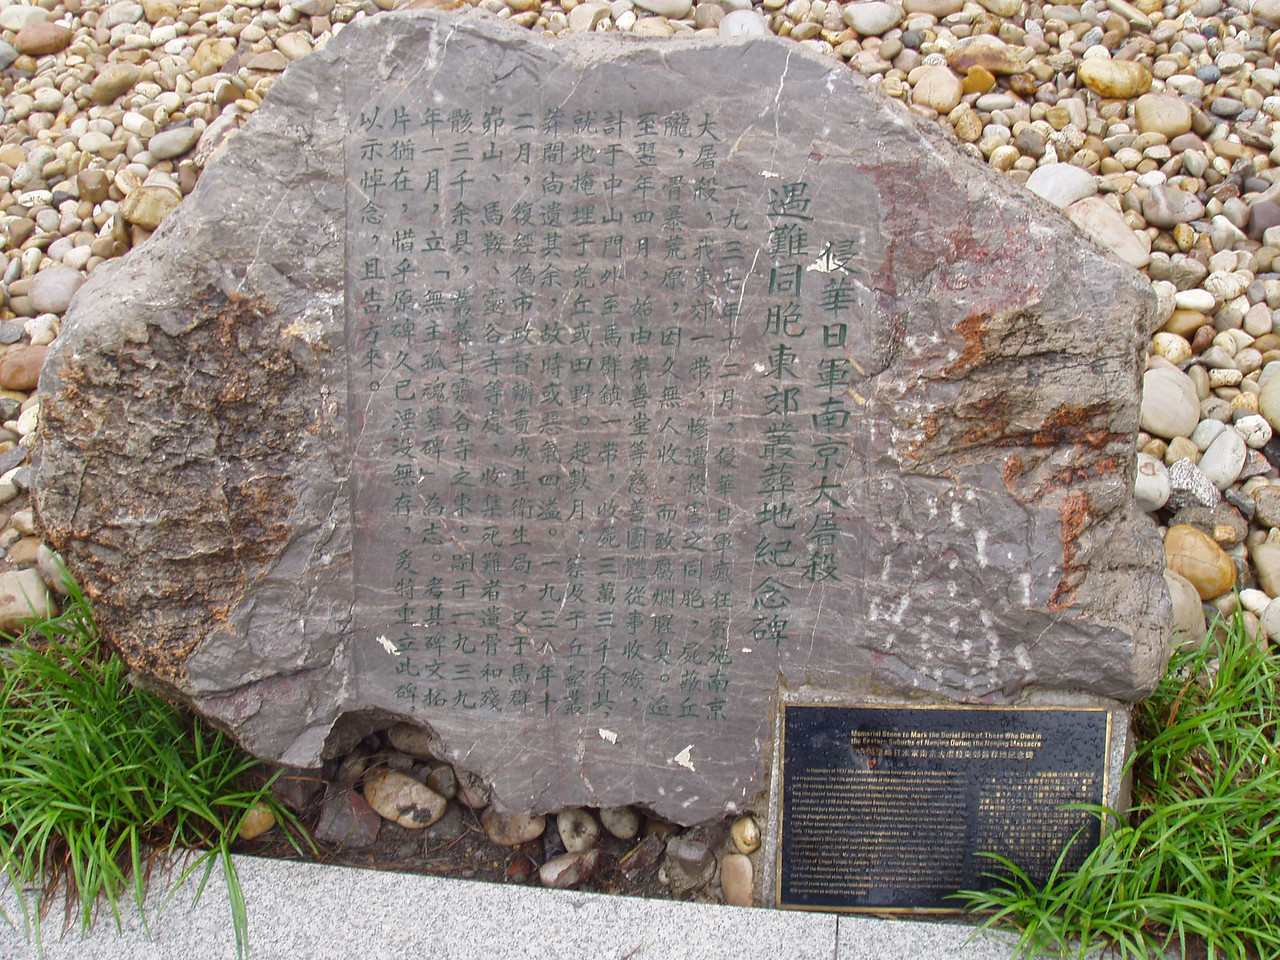 I found this quite interesting.  There were several of these stones scattered around commemorating different massacres.  The stone is in Chinese, the little black plaque in English and Japanese.  The scary part was my friend Dana translating the conversations around us.  Several kids telling their mom's that they wanted to kill Japanese people, and the parents agreeing.  Scary shit.  All of the plaques spoke of making sure China is strong so the massacre can never happen again.  Unless of course you happen to be Uighur, or...